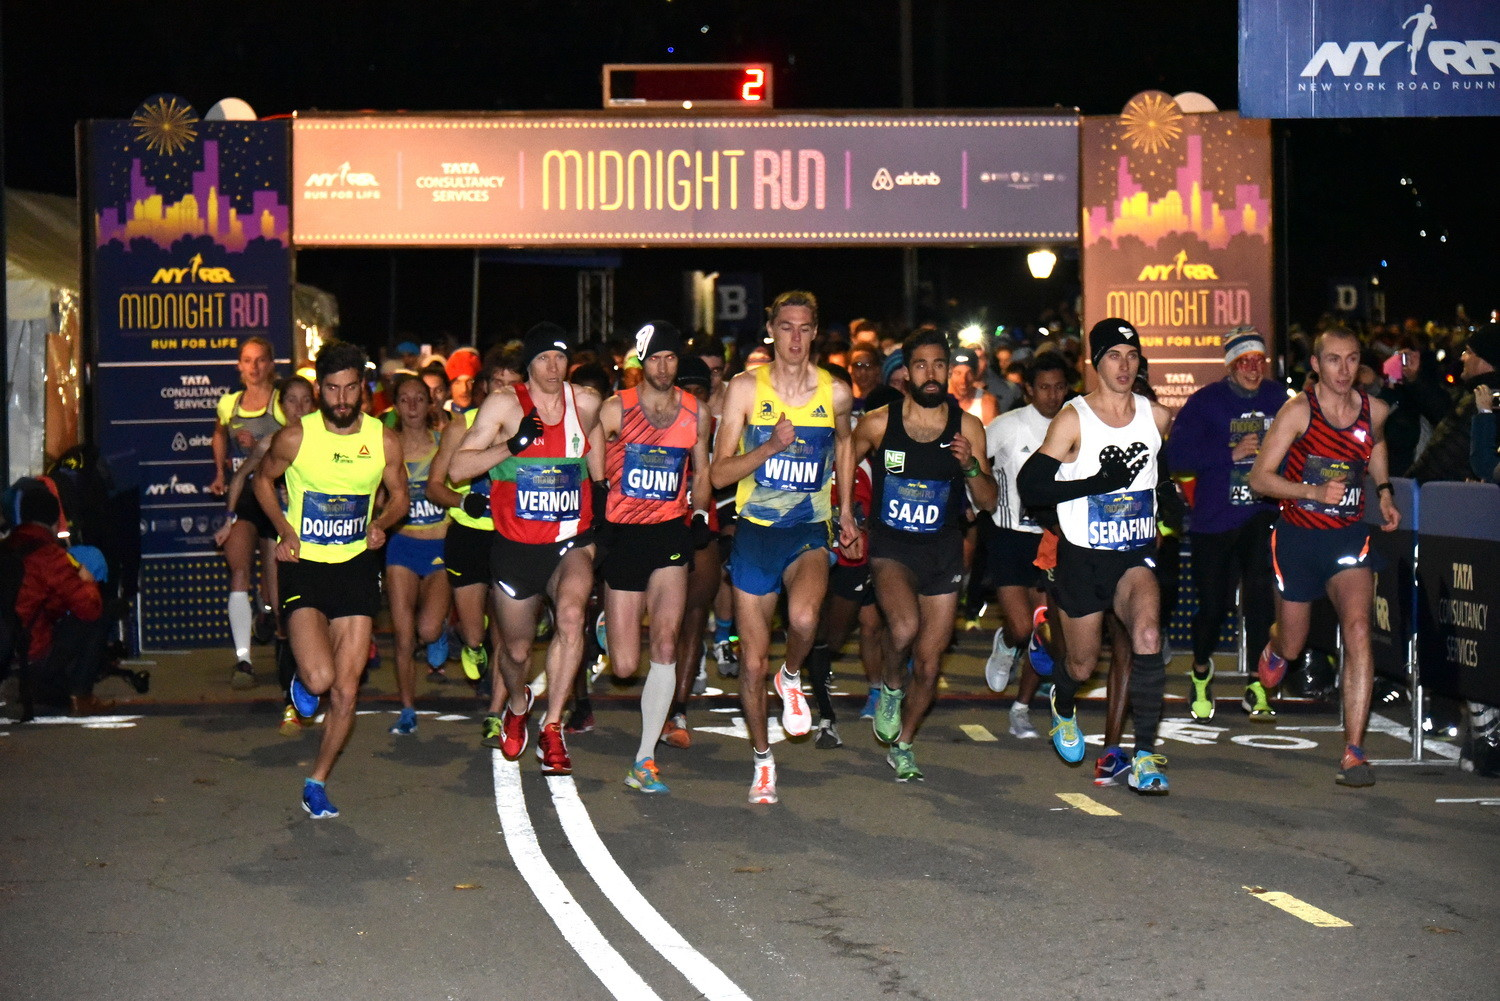 More Than 5,000 Runners to Run NYRR Midnight Run